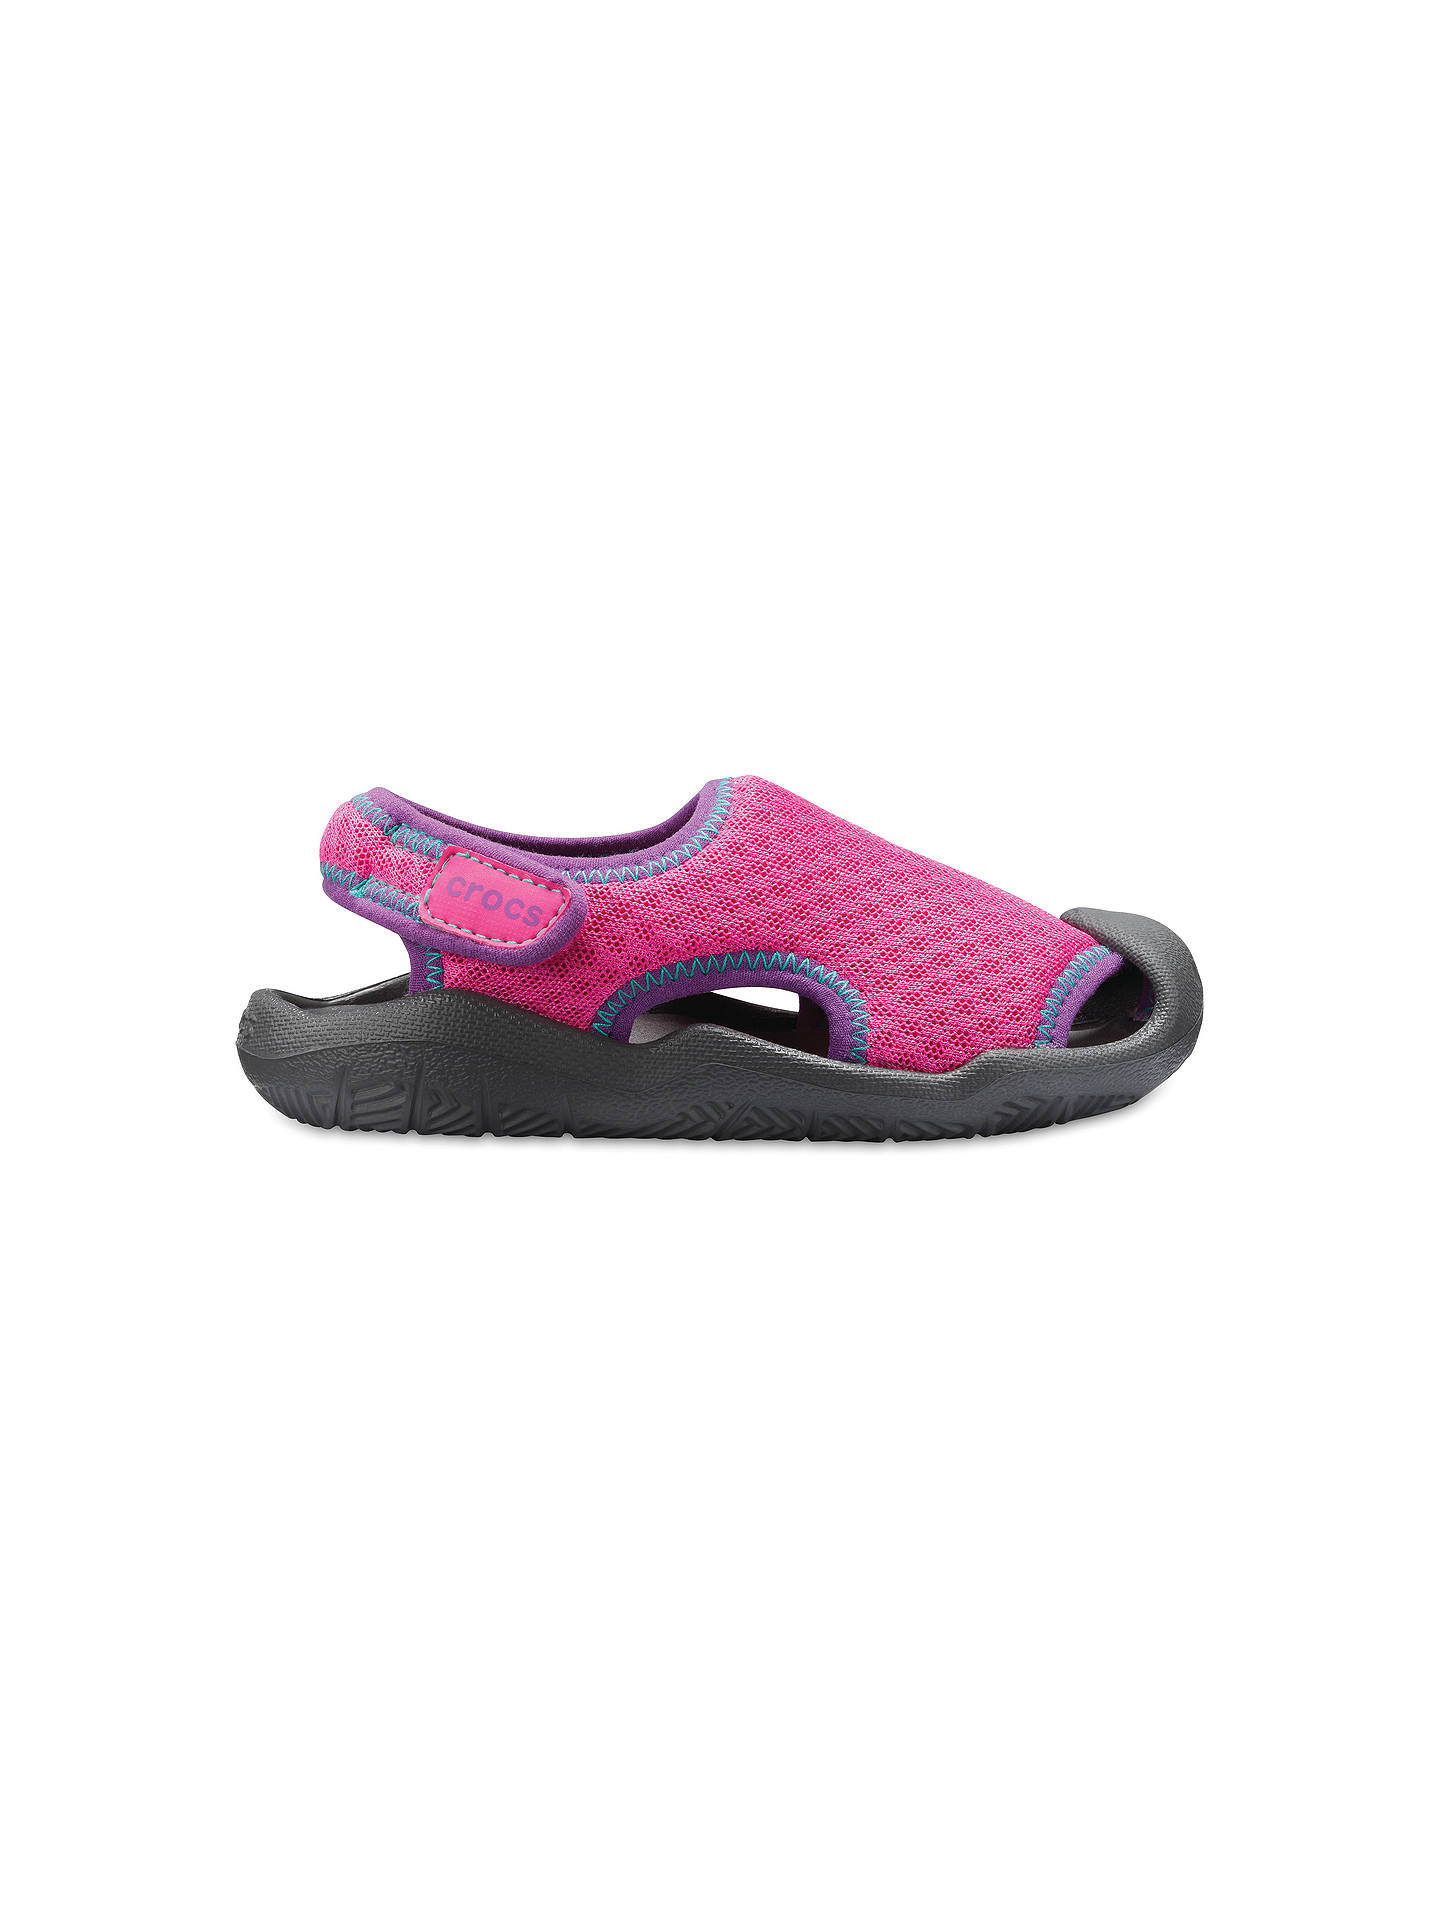 a9d2dfda03 Crocs Children's Swiftwater Sandal, Pink/Grey